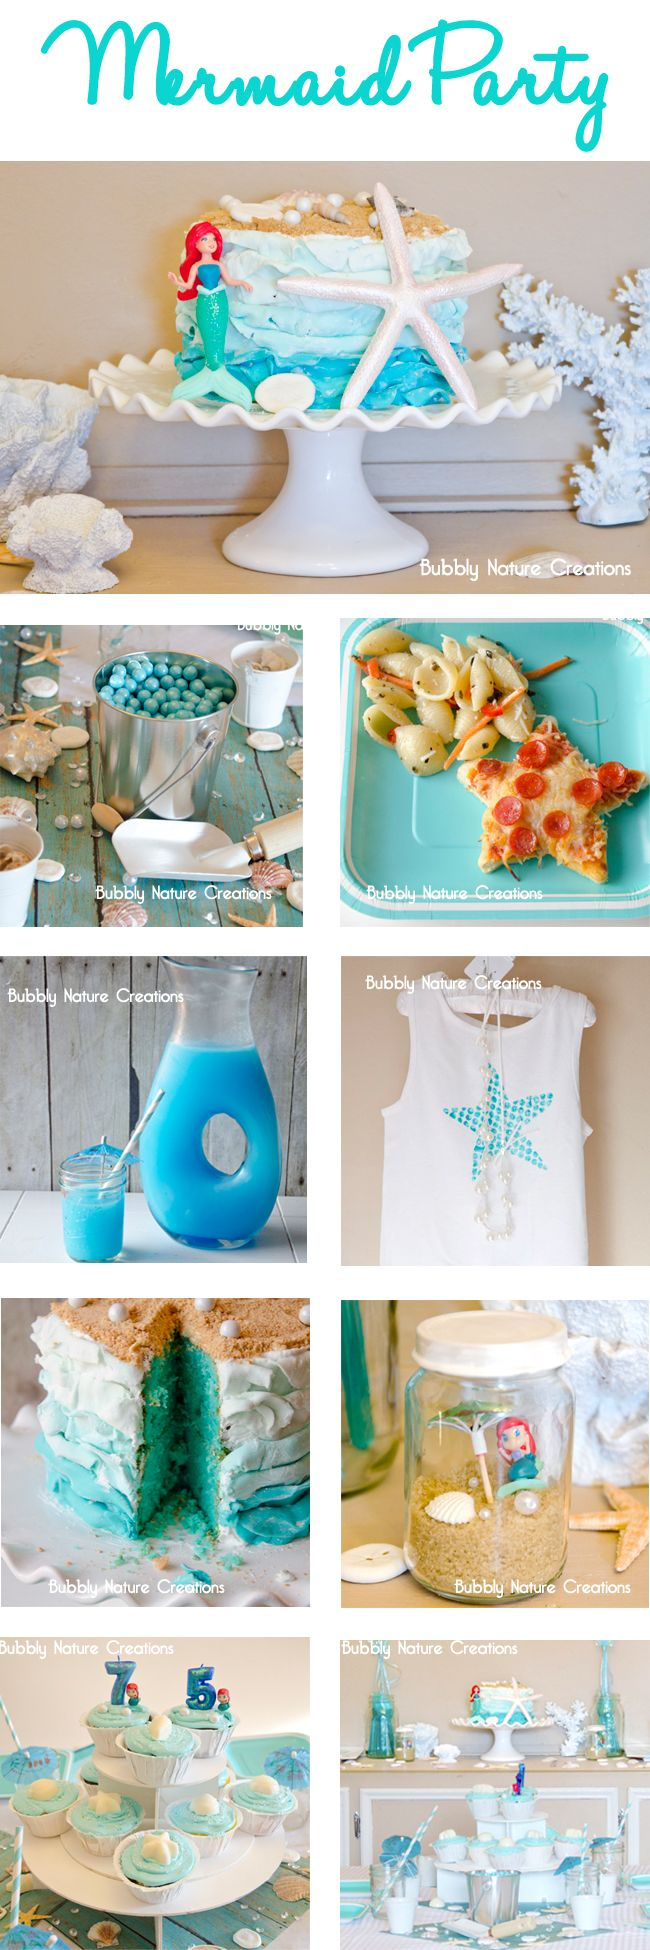 mermaid party plans - Bubbly Nature Creations Love the pasta salad idea